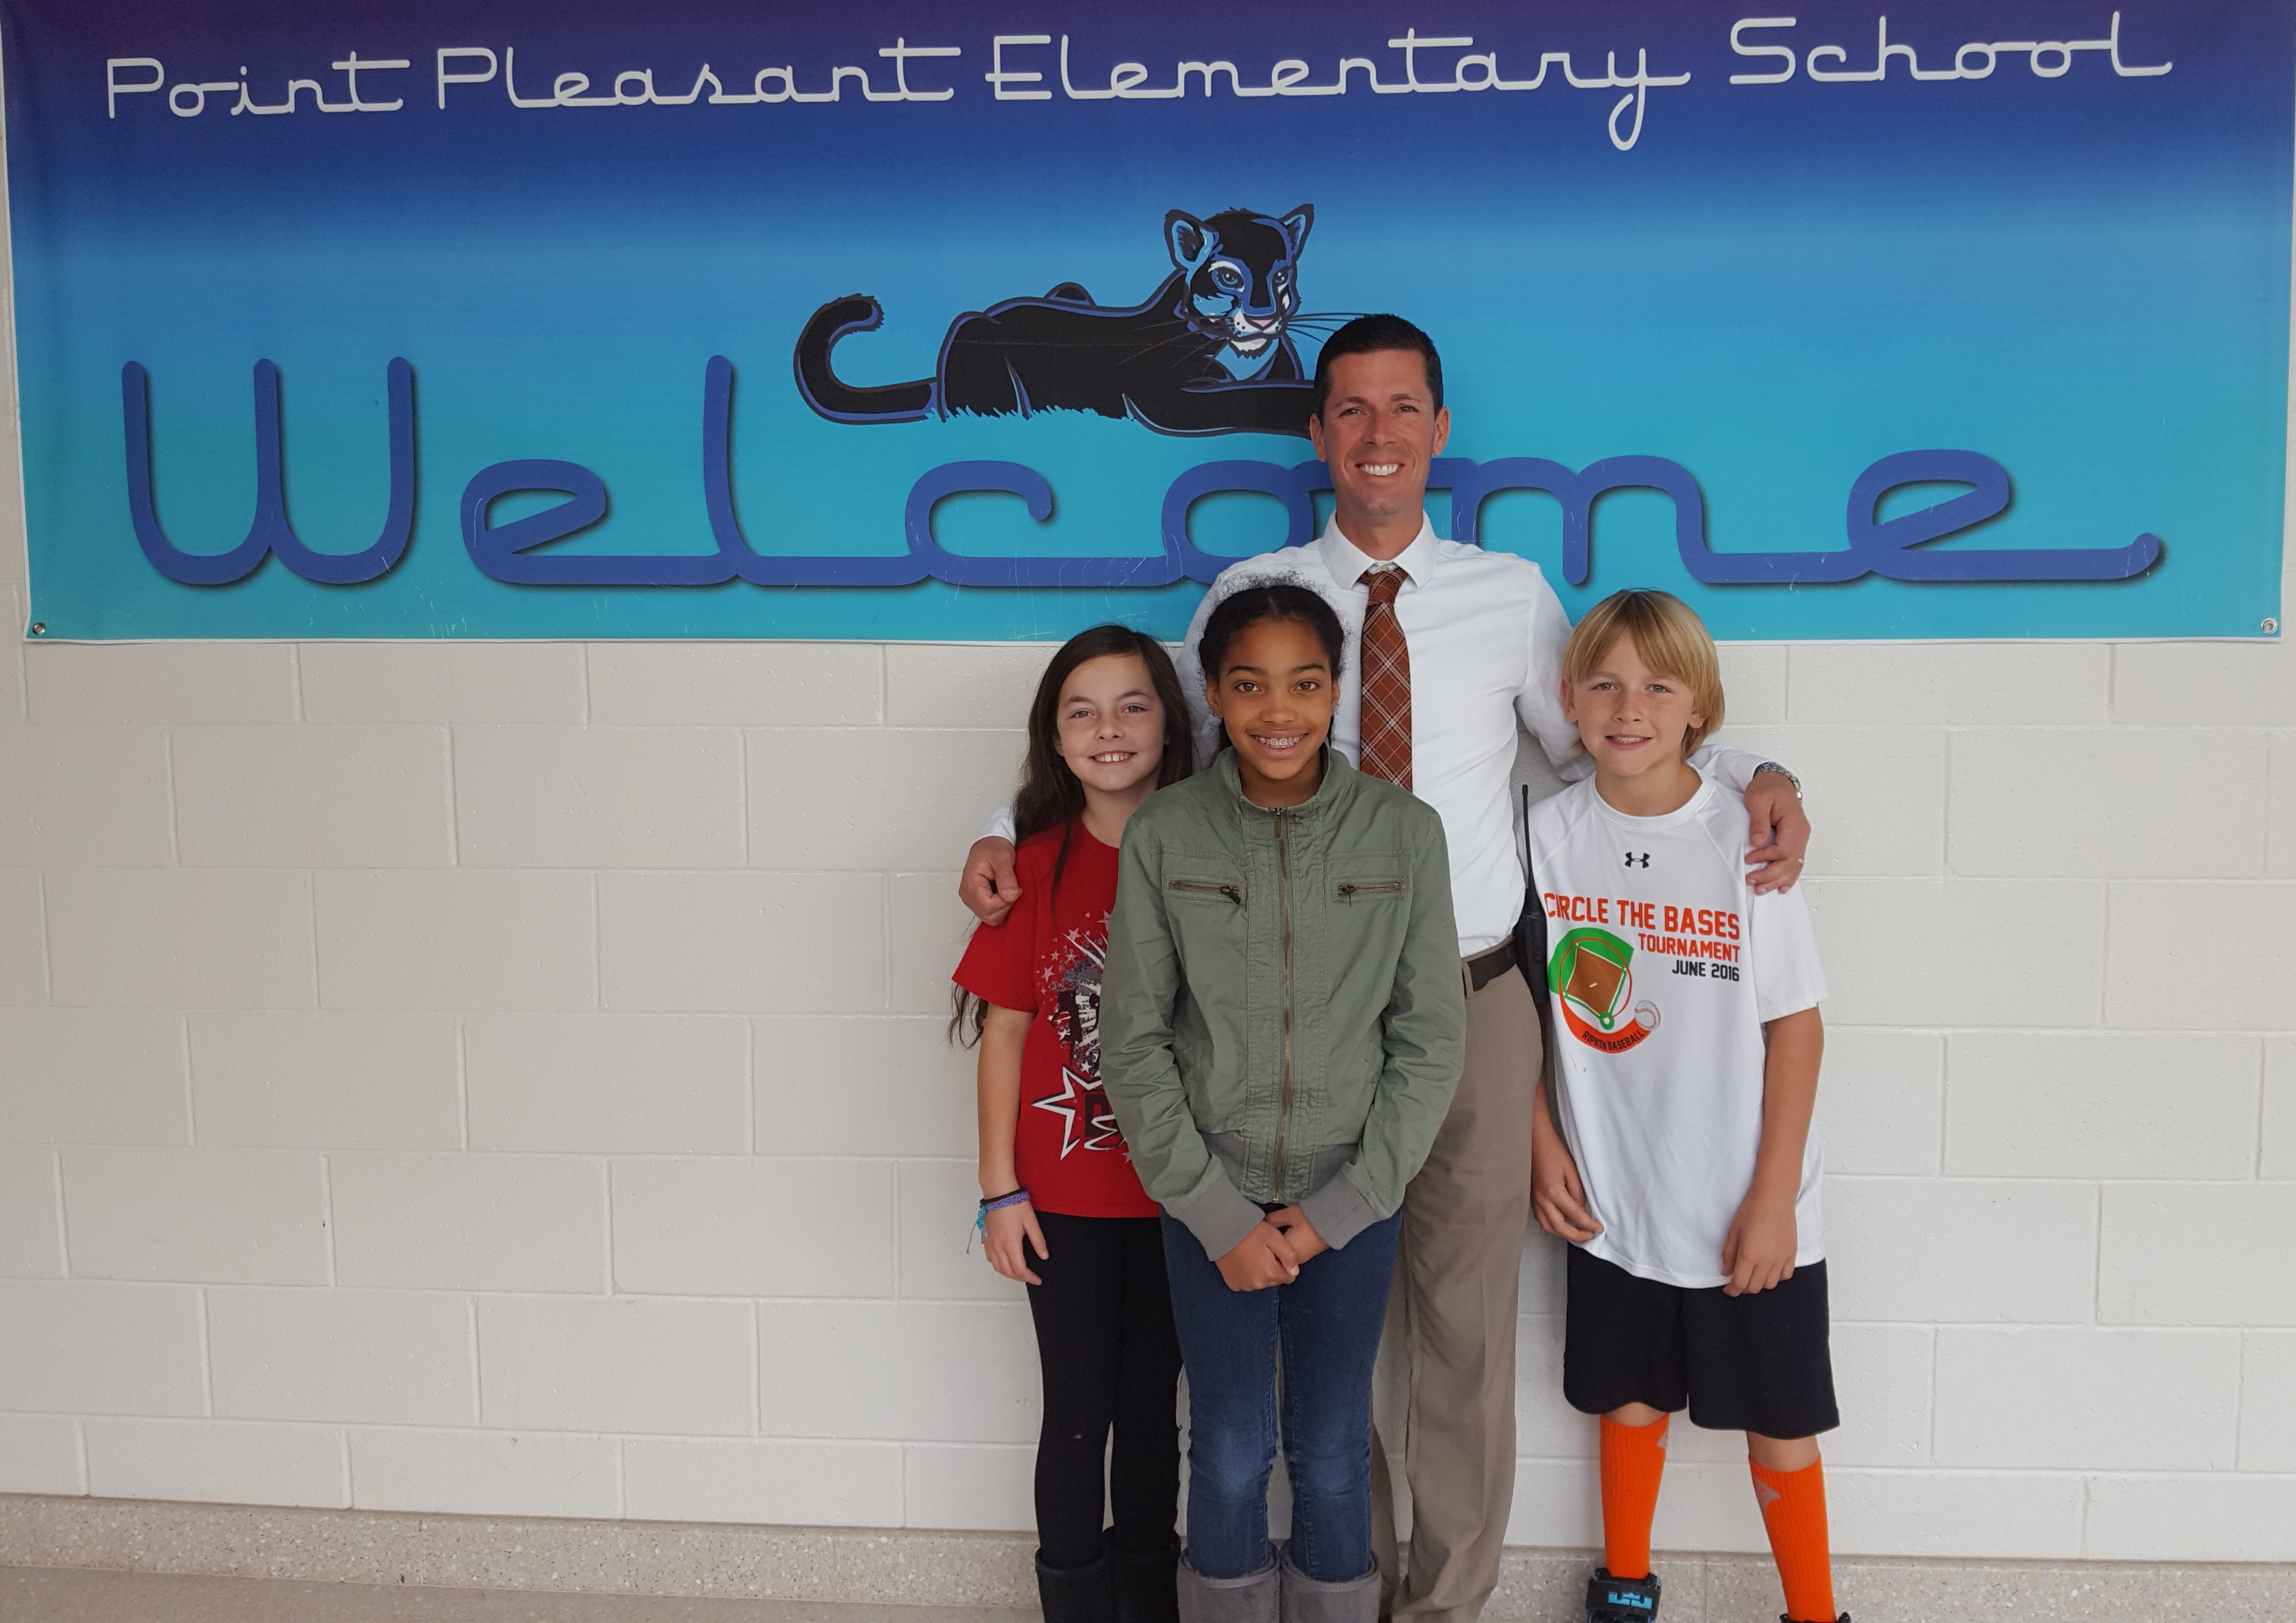 Principal Christopher Gordon standing with three students